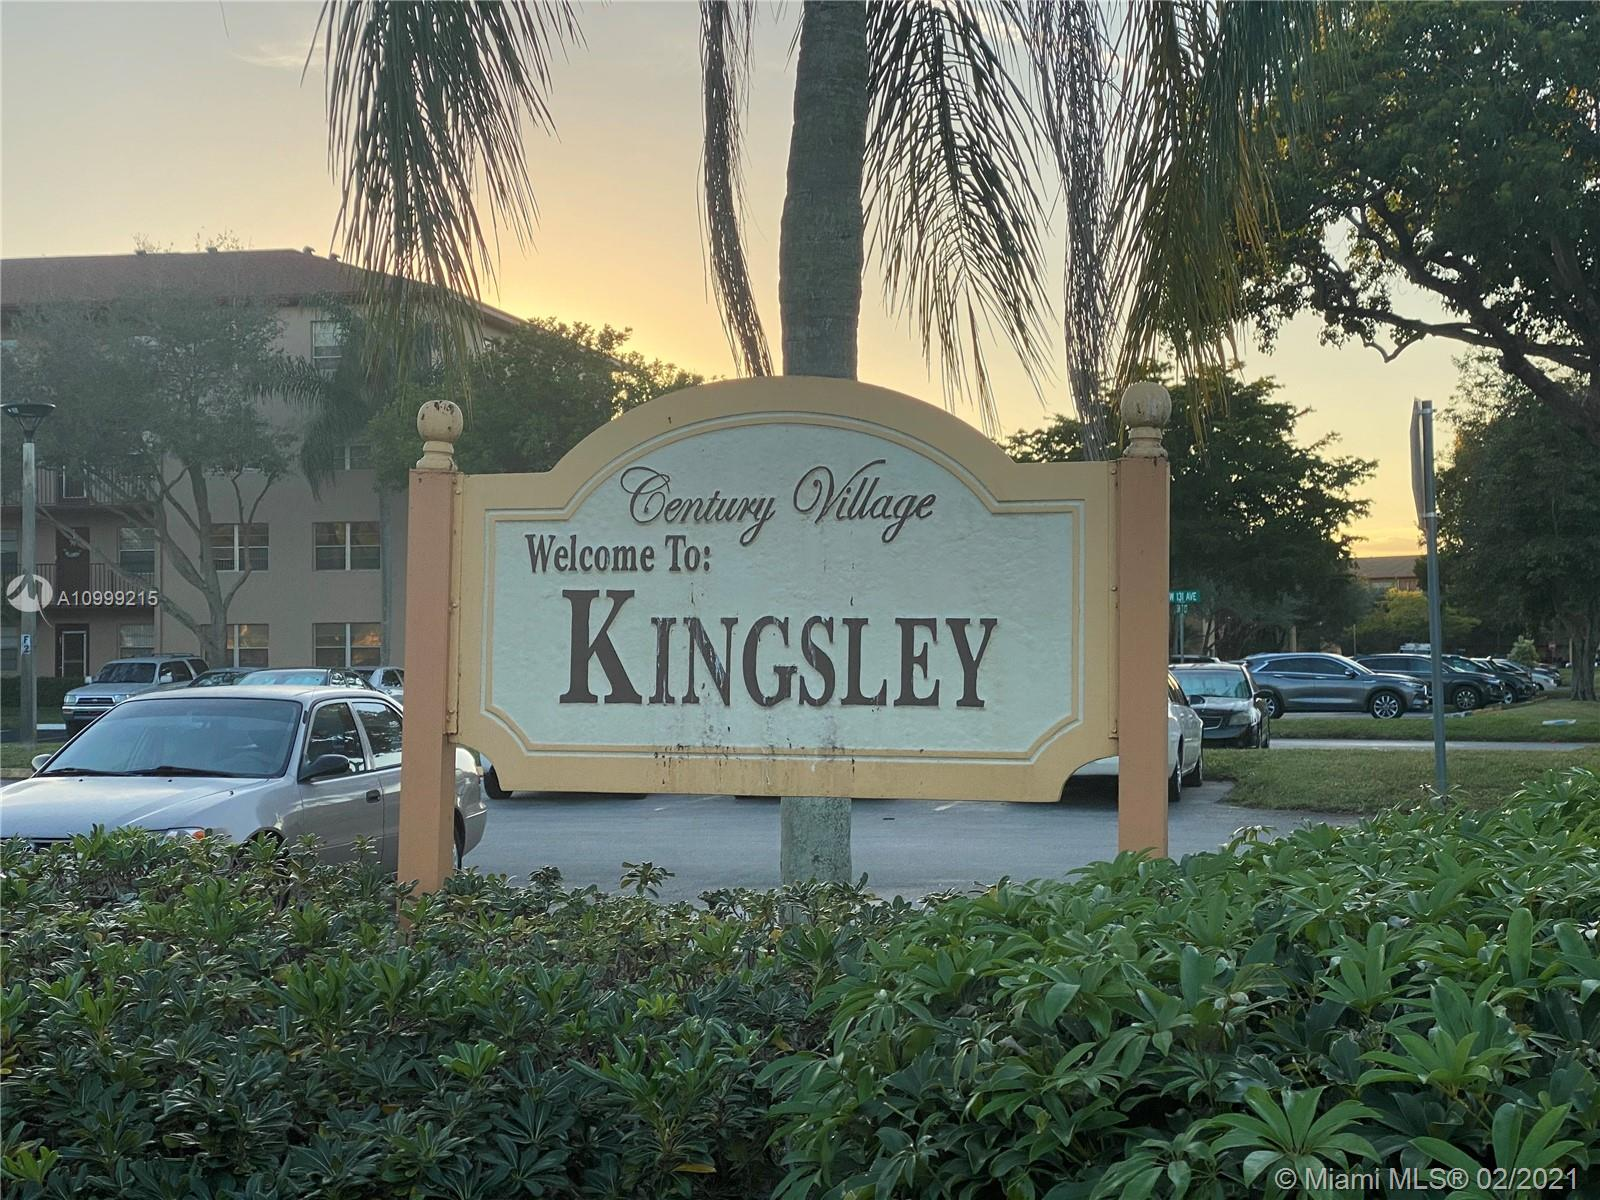 This First floor KINGSLEY 1 bedroom with 1.5 bath condo unit has been completely remodeled with brand new shaker kitchen doors , ceramic tile throughout, upgraded bathroom and an enclosed screen porch offering you a nice calming view towards the lake. The unit also offers accordian shutters , an assigned parking space and all furniture included in listing pictures. For the residents convenience the community offers shuttle service to grocery stores, medical facilities and most importantly plenty of Security. There is a large clubhouse with 2 large pools, theatre, ballroom and gameroom. THE TRUE LIVE AND PLAY COMMUNITY for residents 55+. Bring your pickiest buyer.